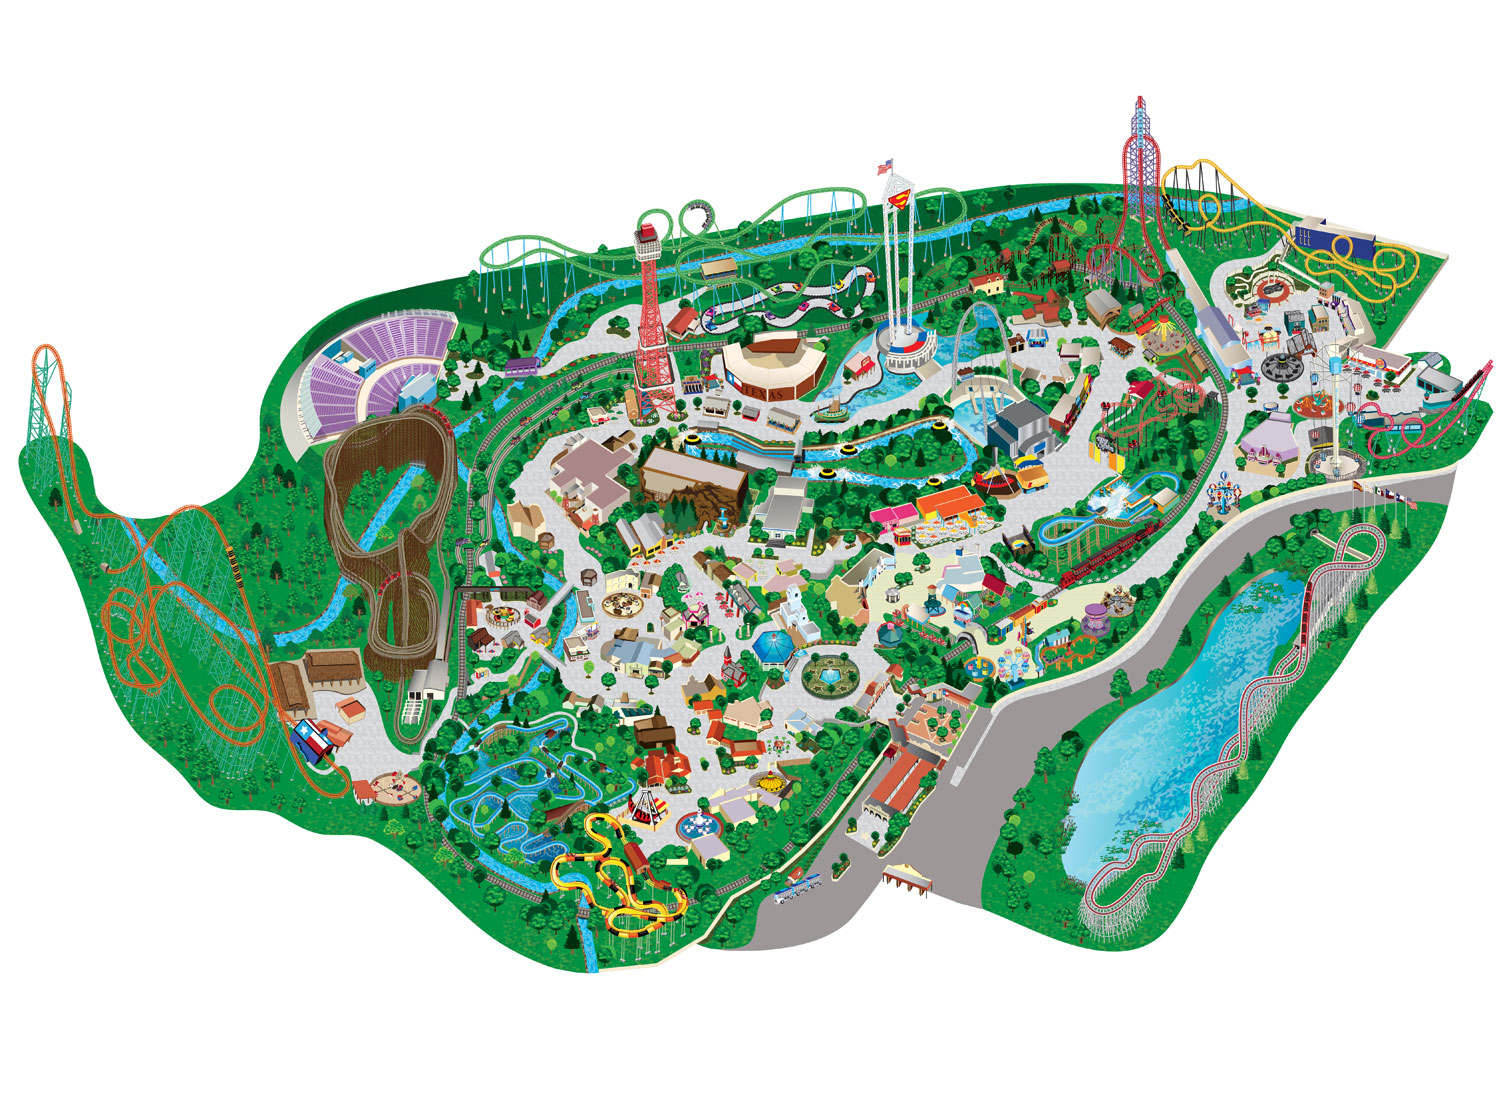 six flags over texas mappng. file  six flags over texas mappng  roller coaster wiki  fandom